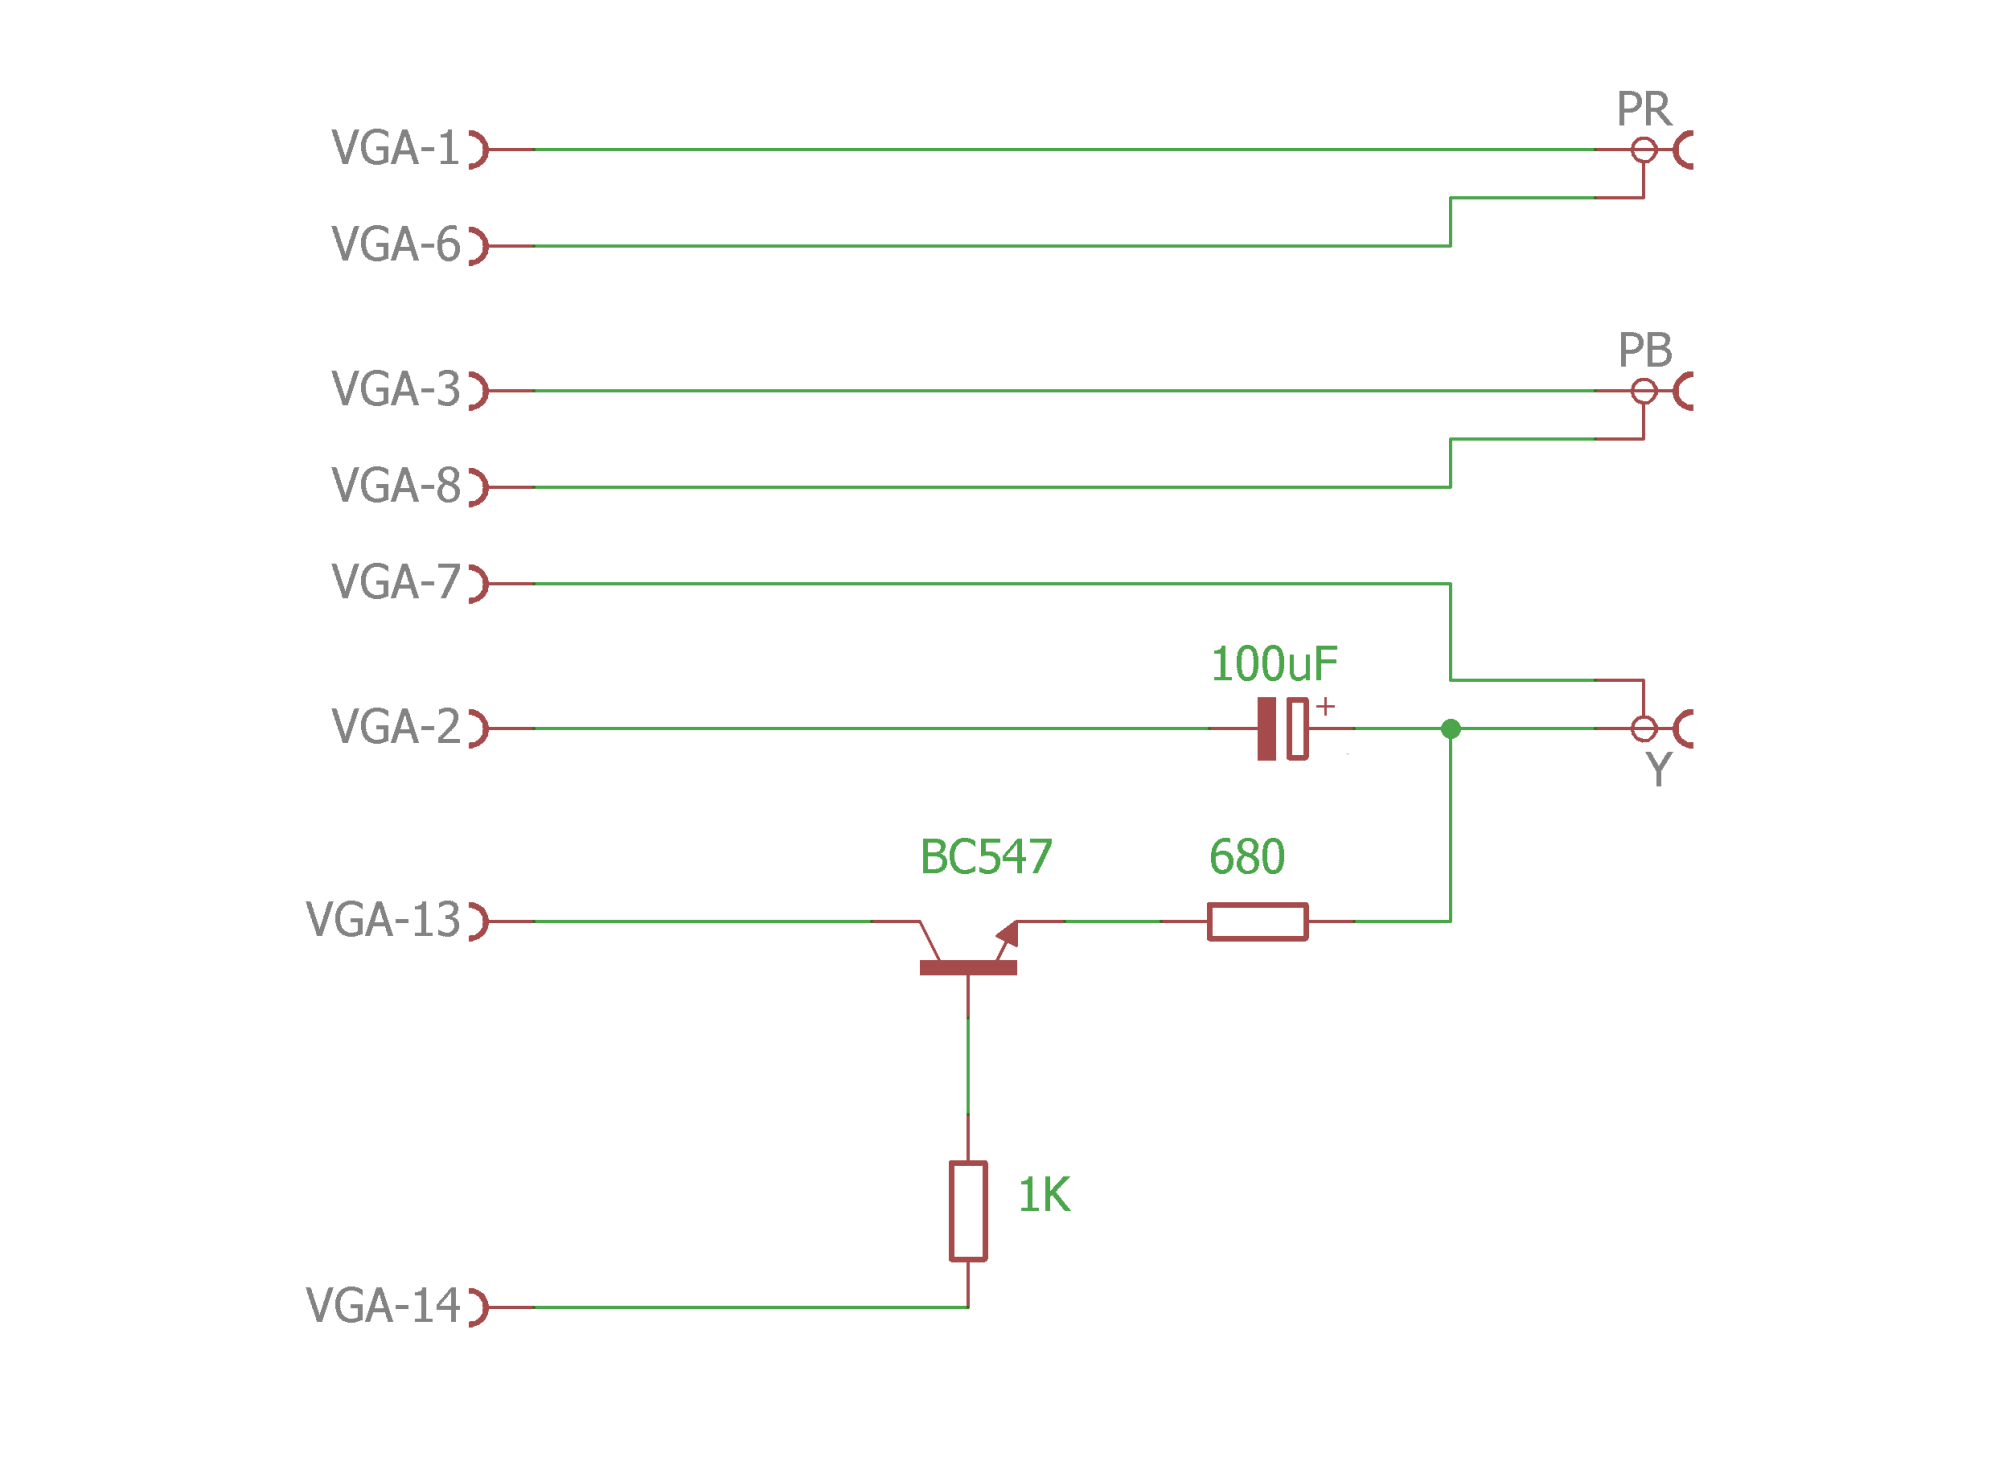 hight resolution of schematic circuit is very simple and can be placed inside the vga connector case